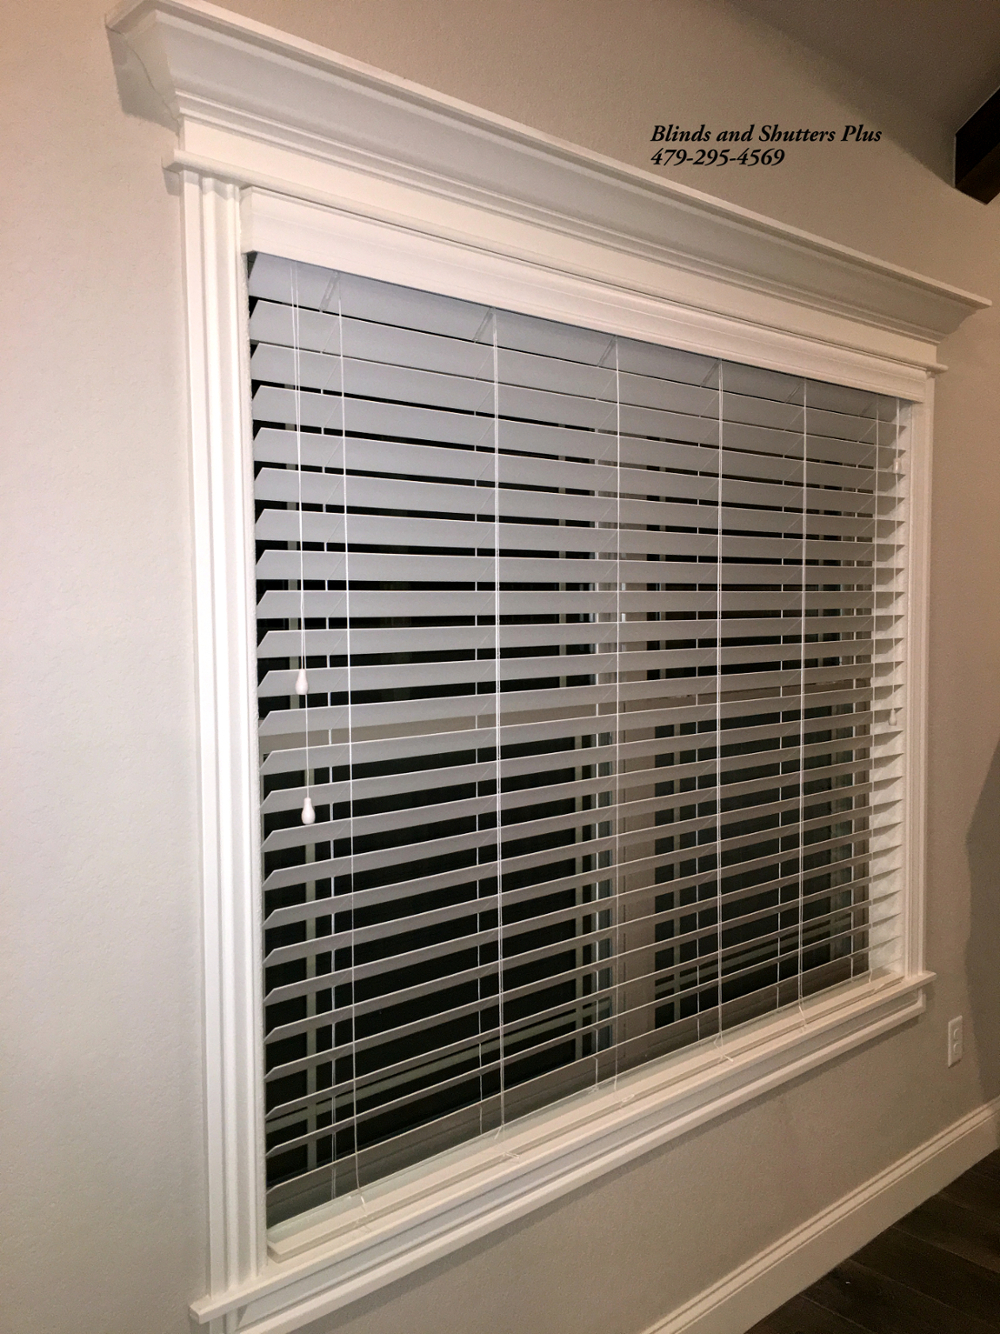 Custom Blinds By Blinds And Shutters Plus